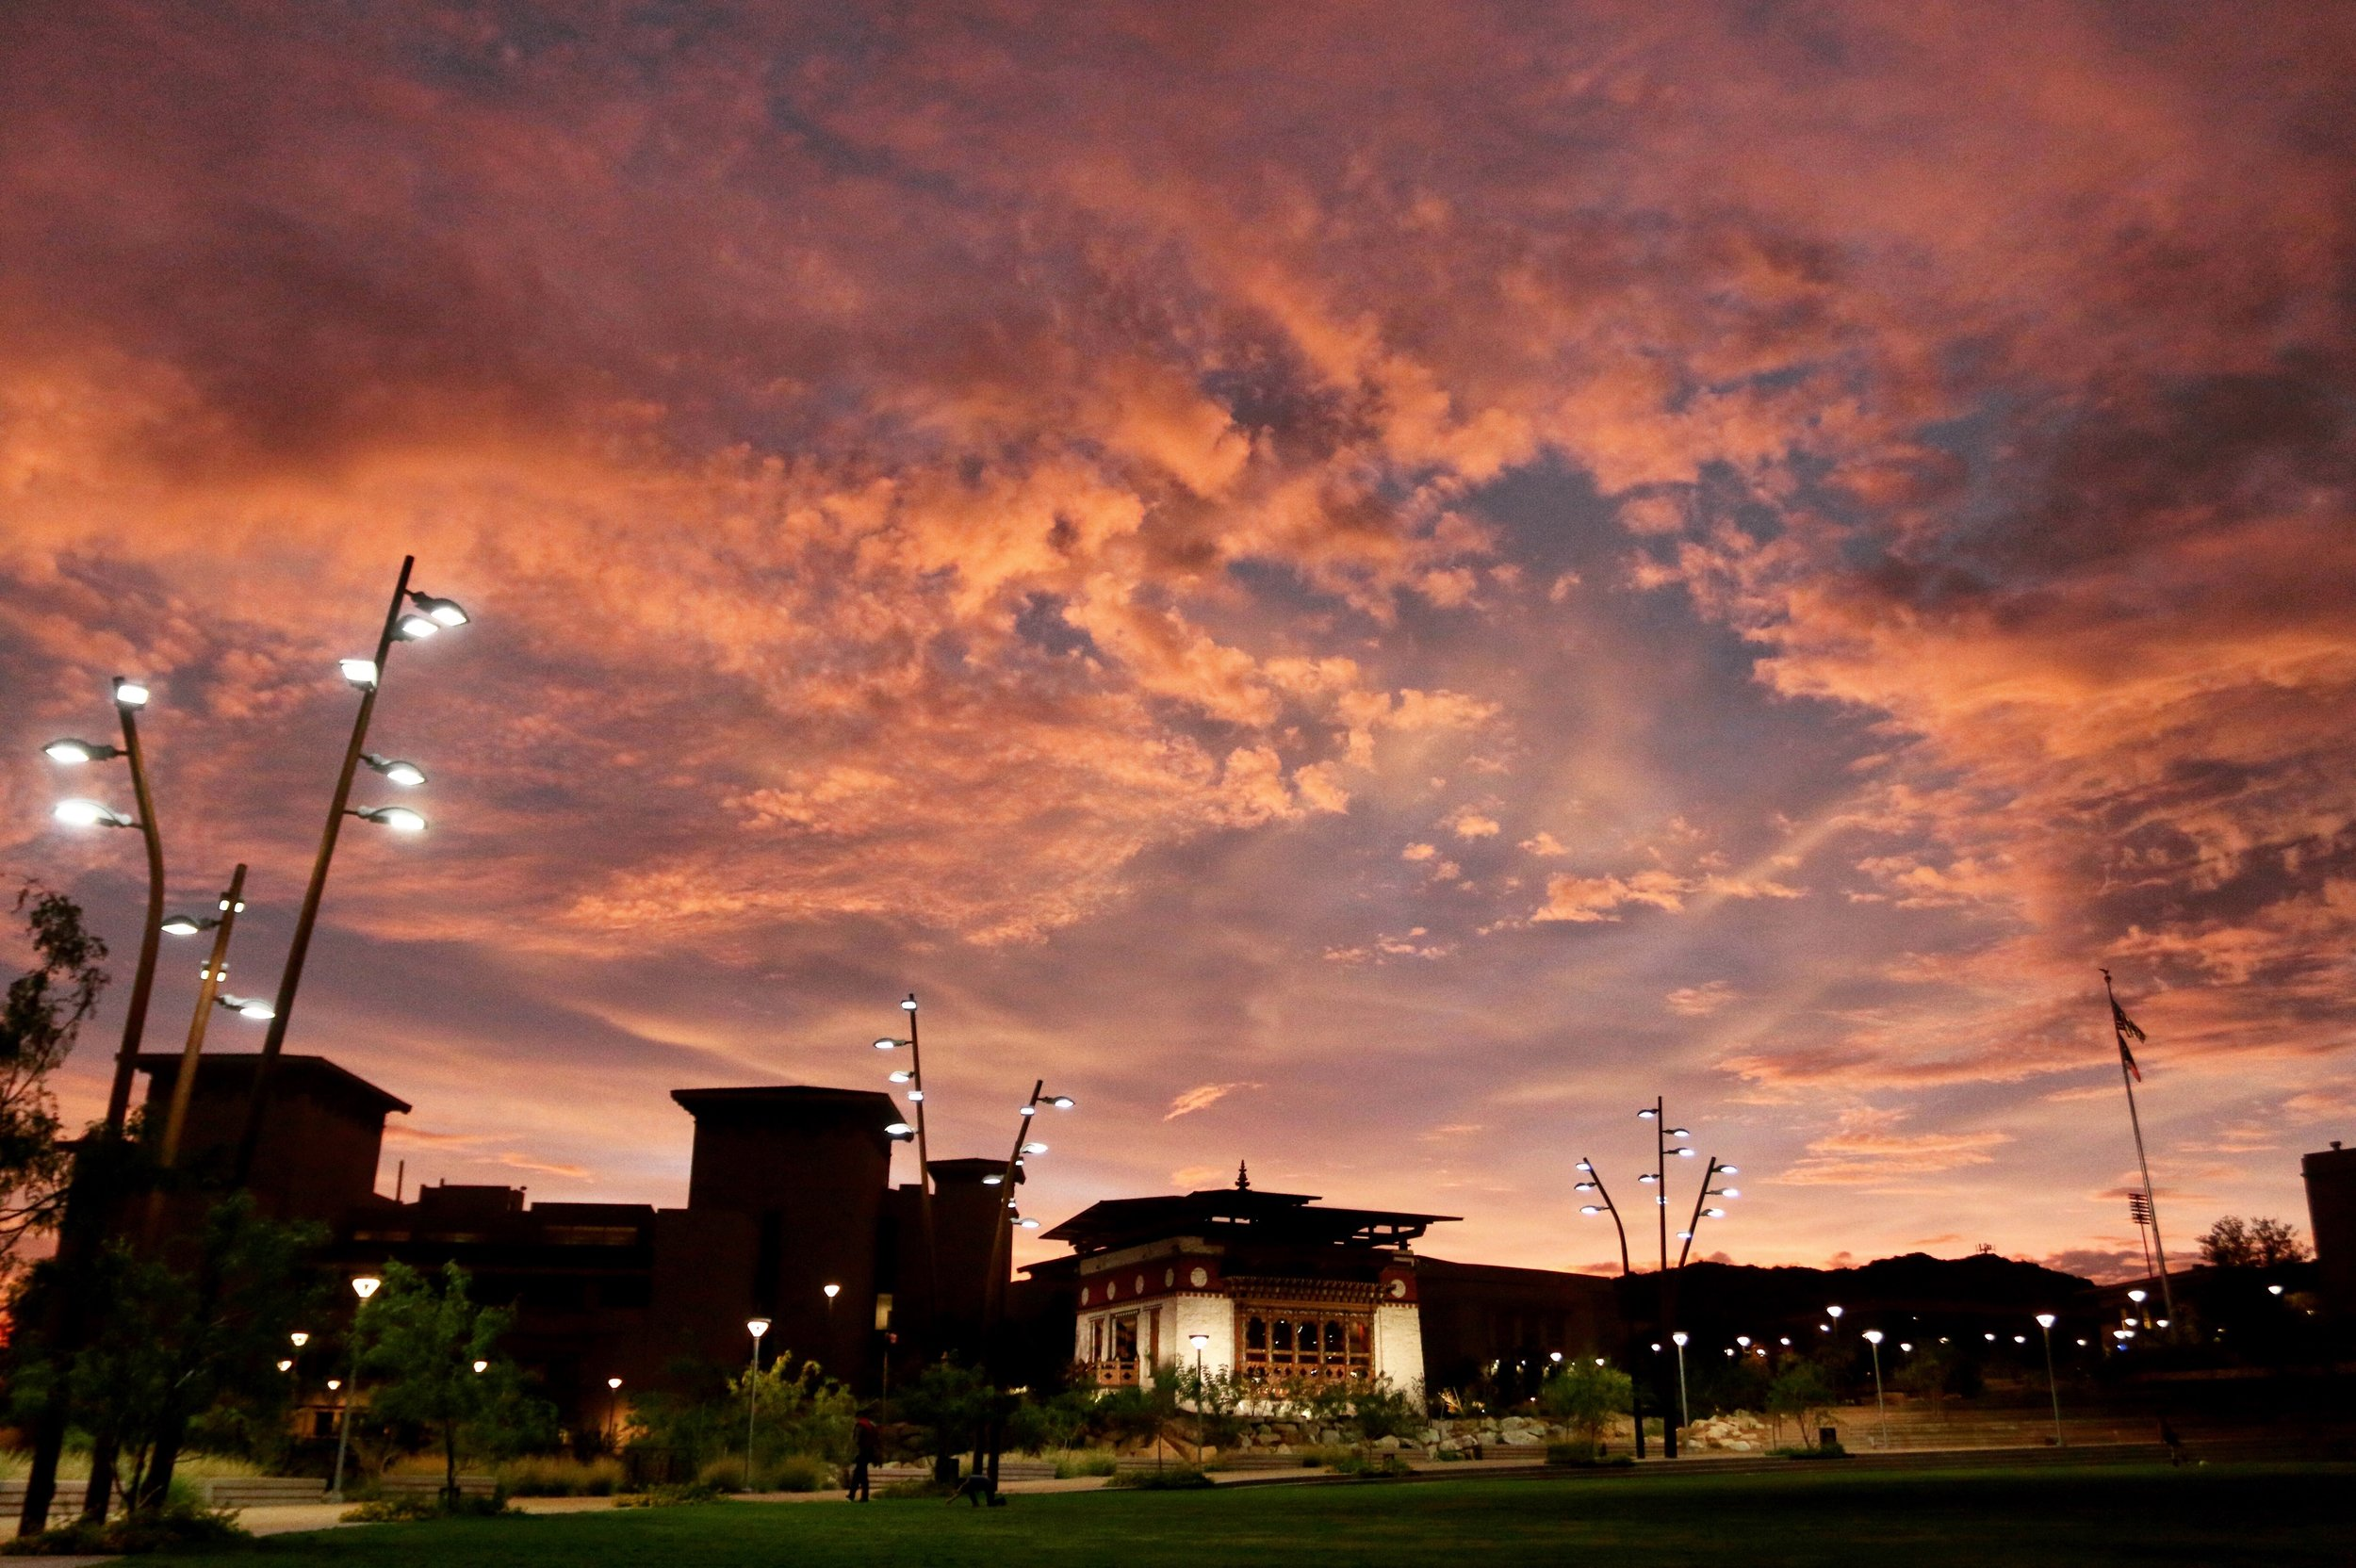 The sky turns pink over Centennial Plaza at The University of Texas at El Paso on Sept. 21, 2015.